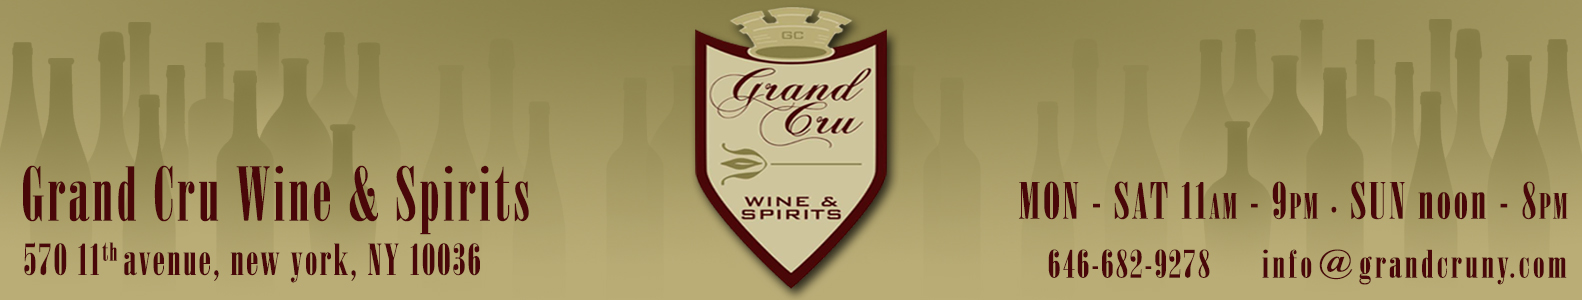 Grand Cru Wine And Spirits